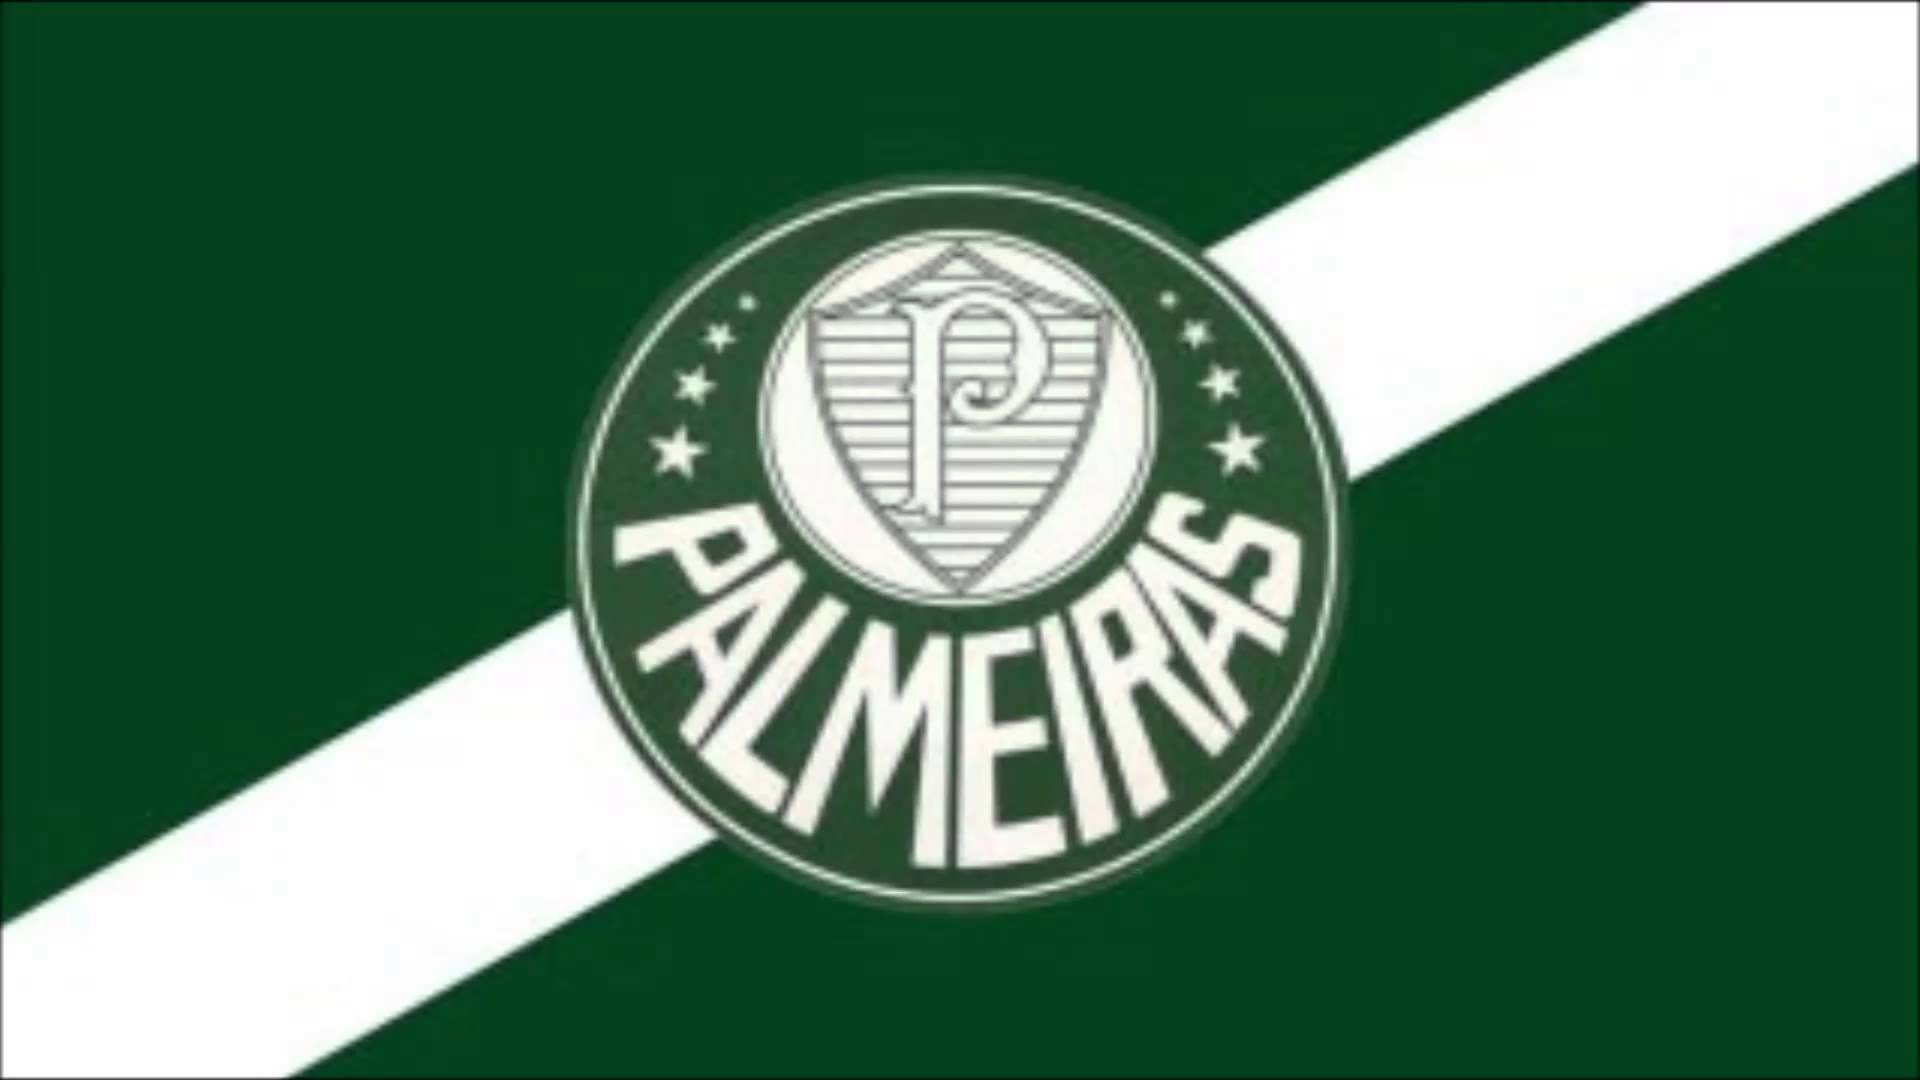 Msi Wallpaper Full Hd Palmeiras Wallpapers 64 Images